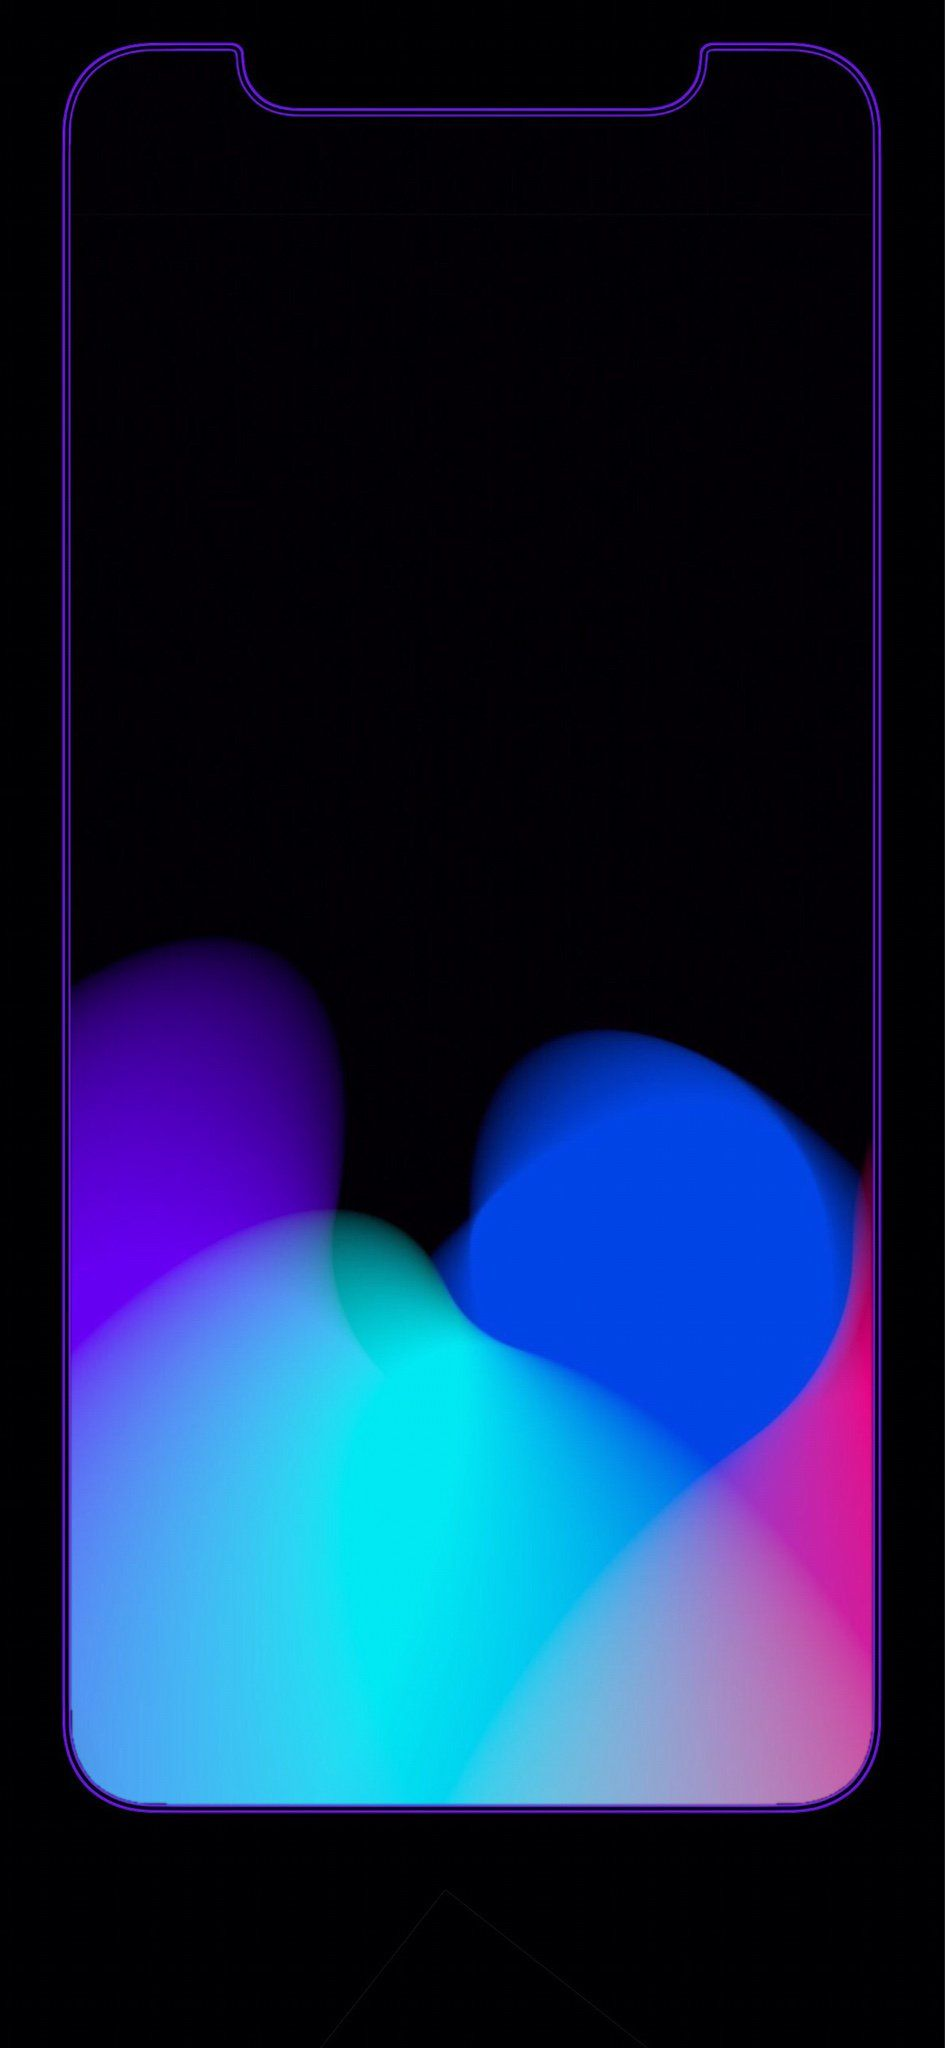 The Iphone X Wallpaper Thread Page 26 Iphone Ipad Ipod Forums At Imore Com New Wallpaper Iphone Iphone Homescreen Wallpaper Smartphone Wallpaper